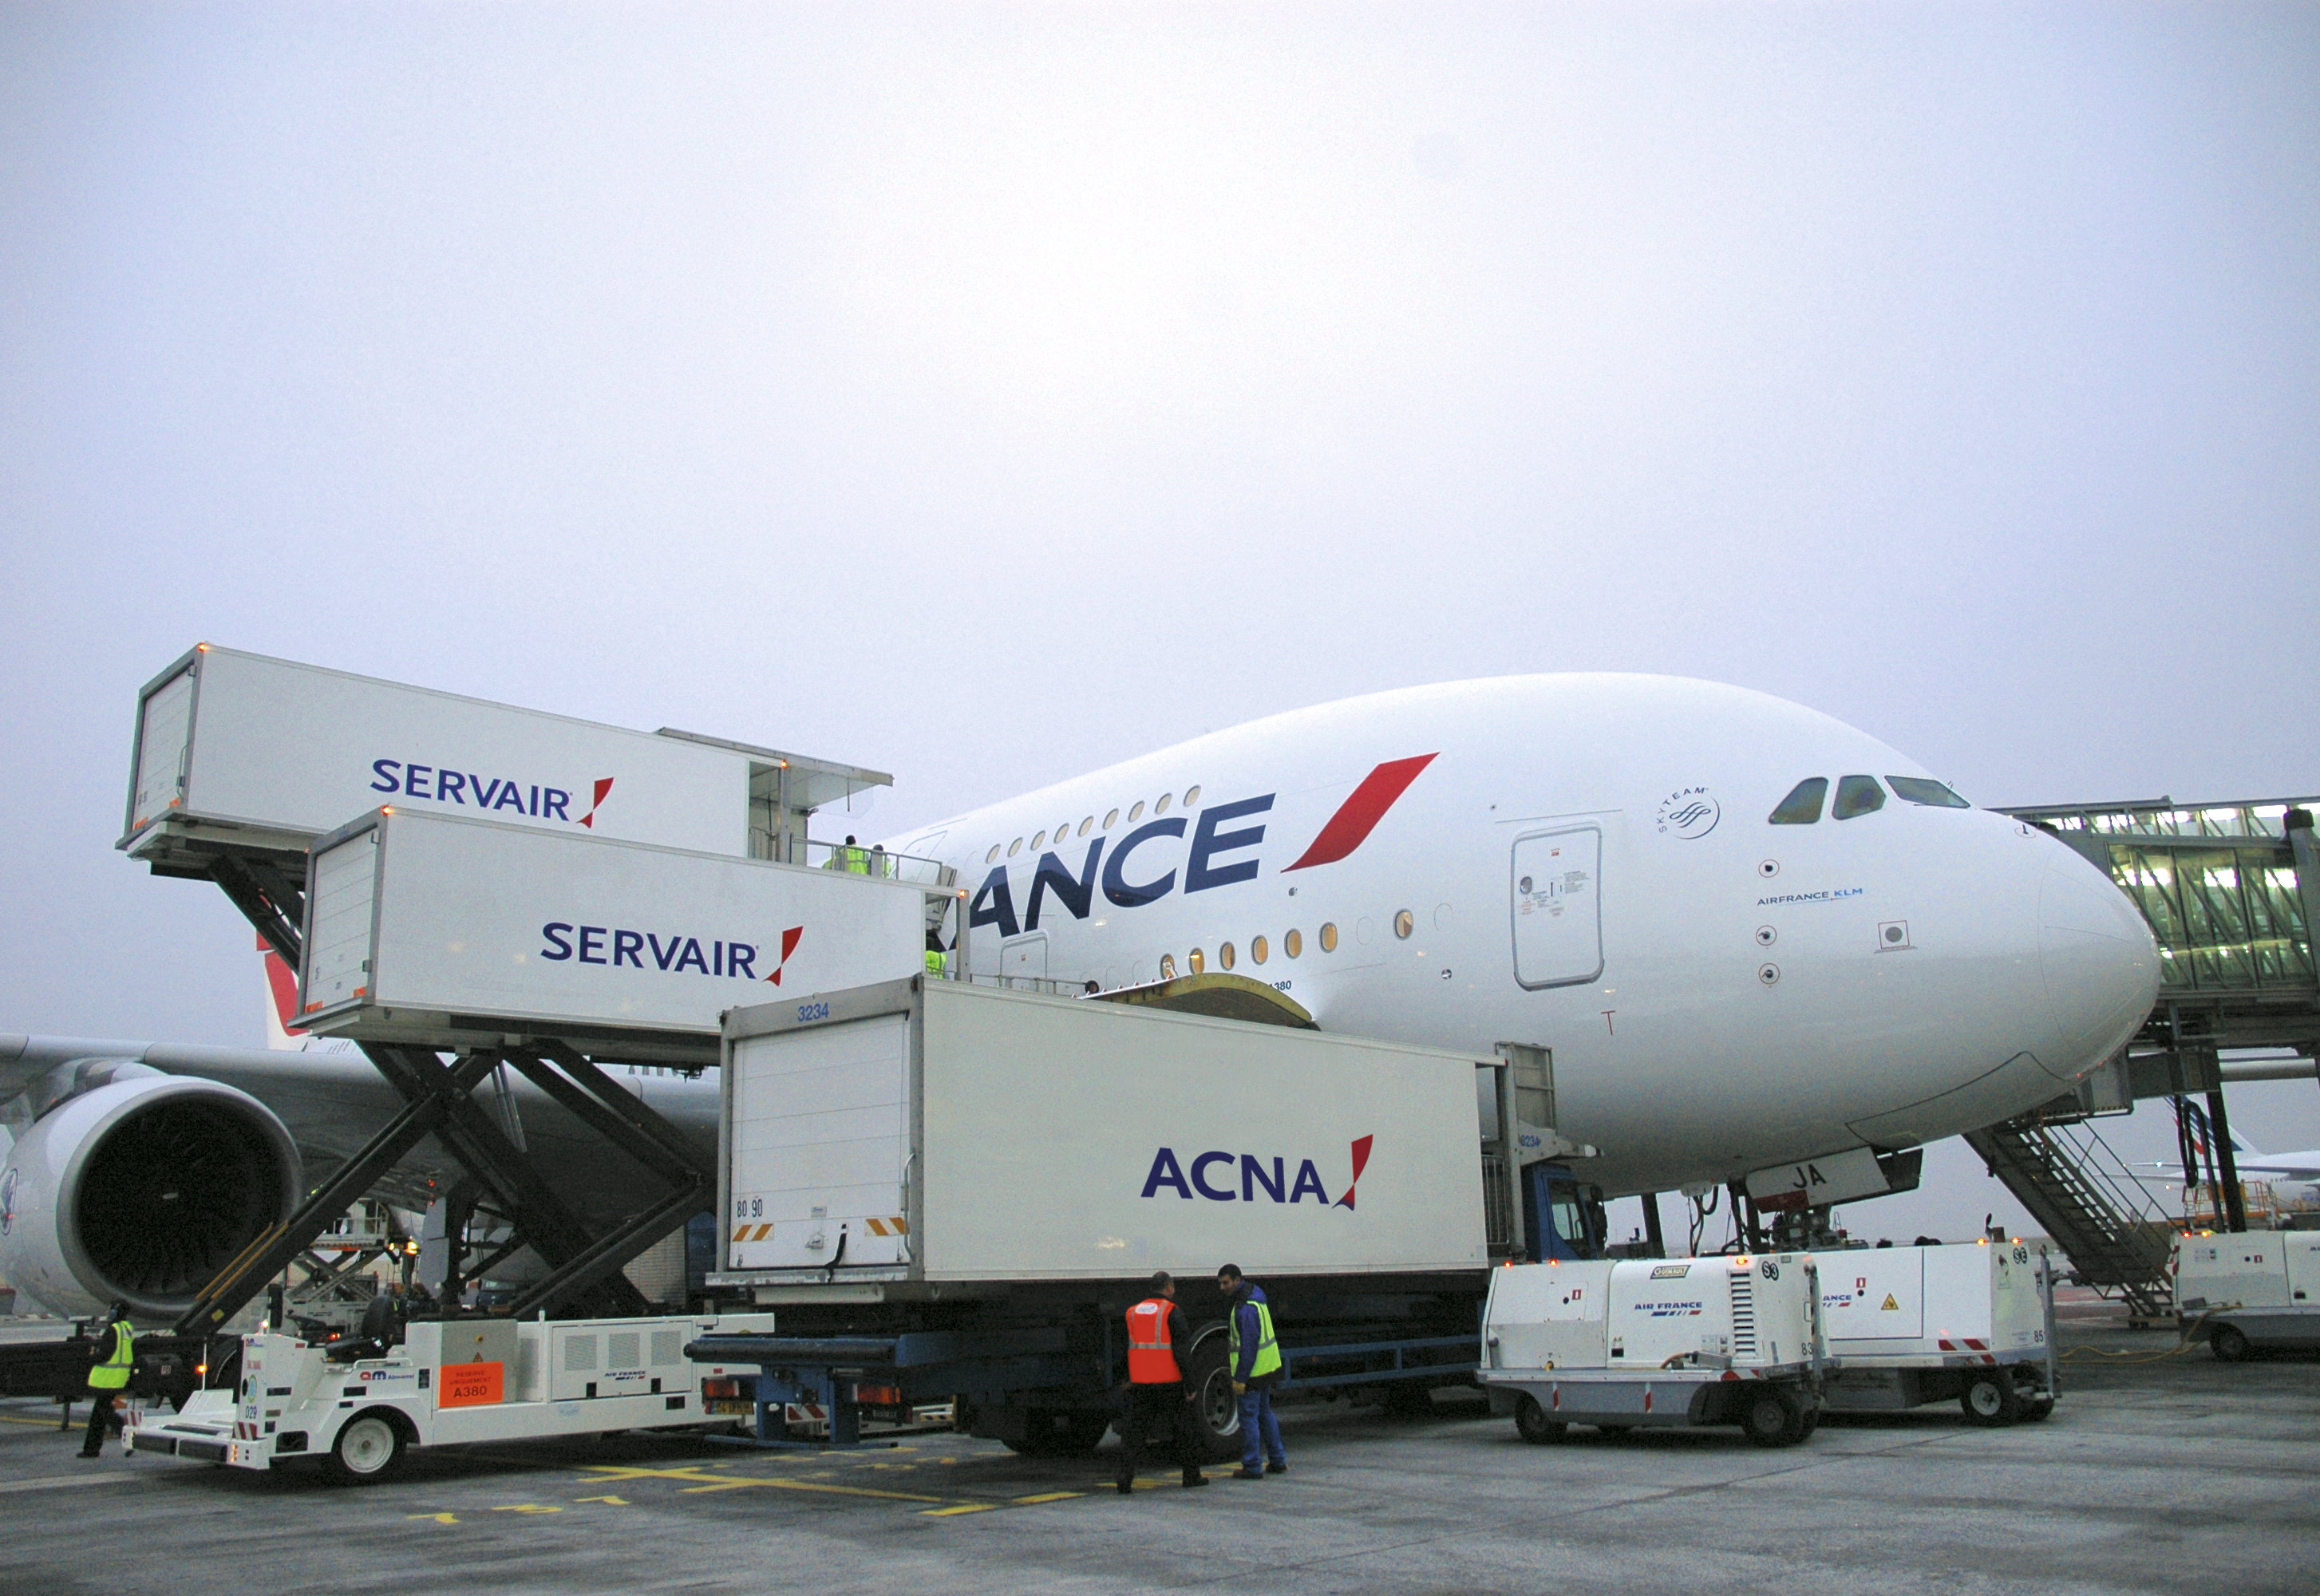 Servair leverer cateringydelser til Air France. (Foto: Servair)